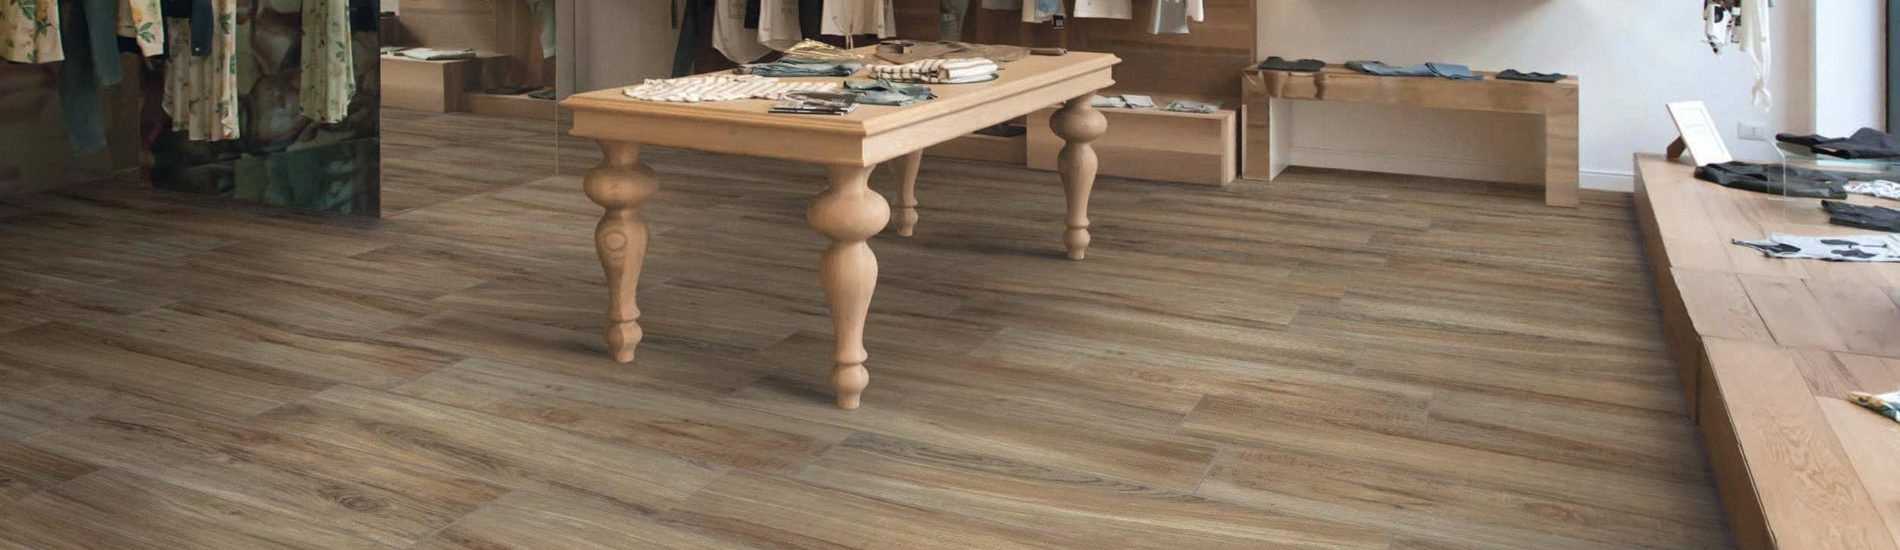 banner-eco-timber-rectified-wood-look-tile-faro-ceramiche